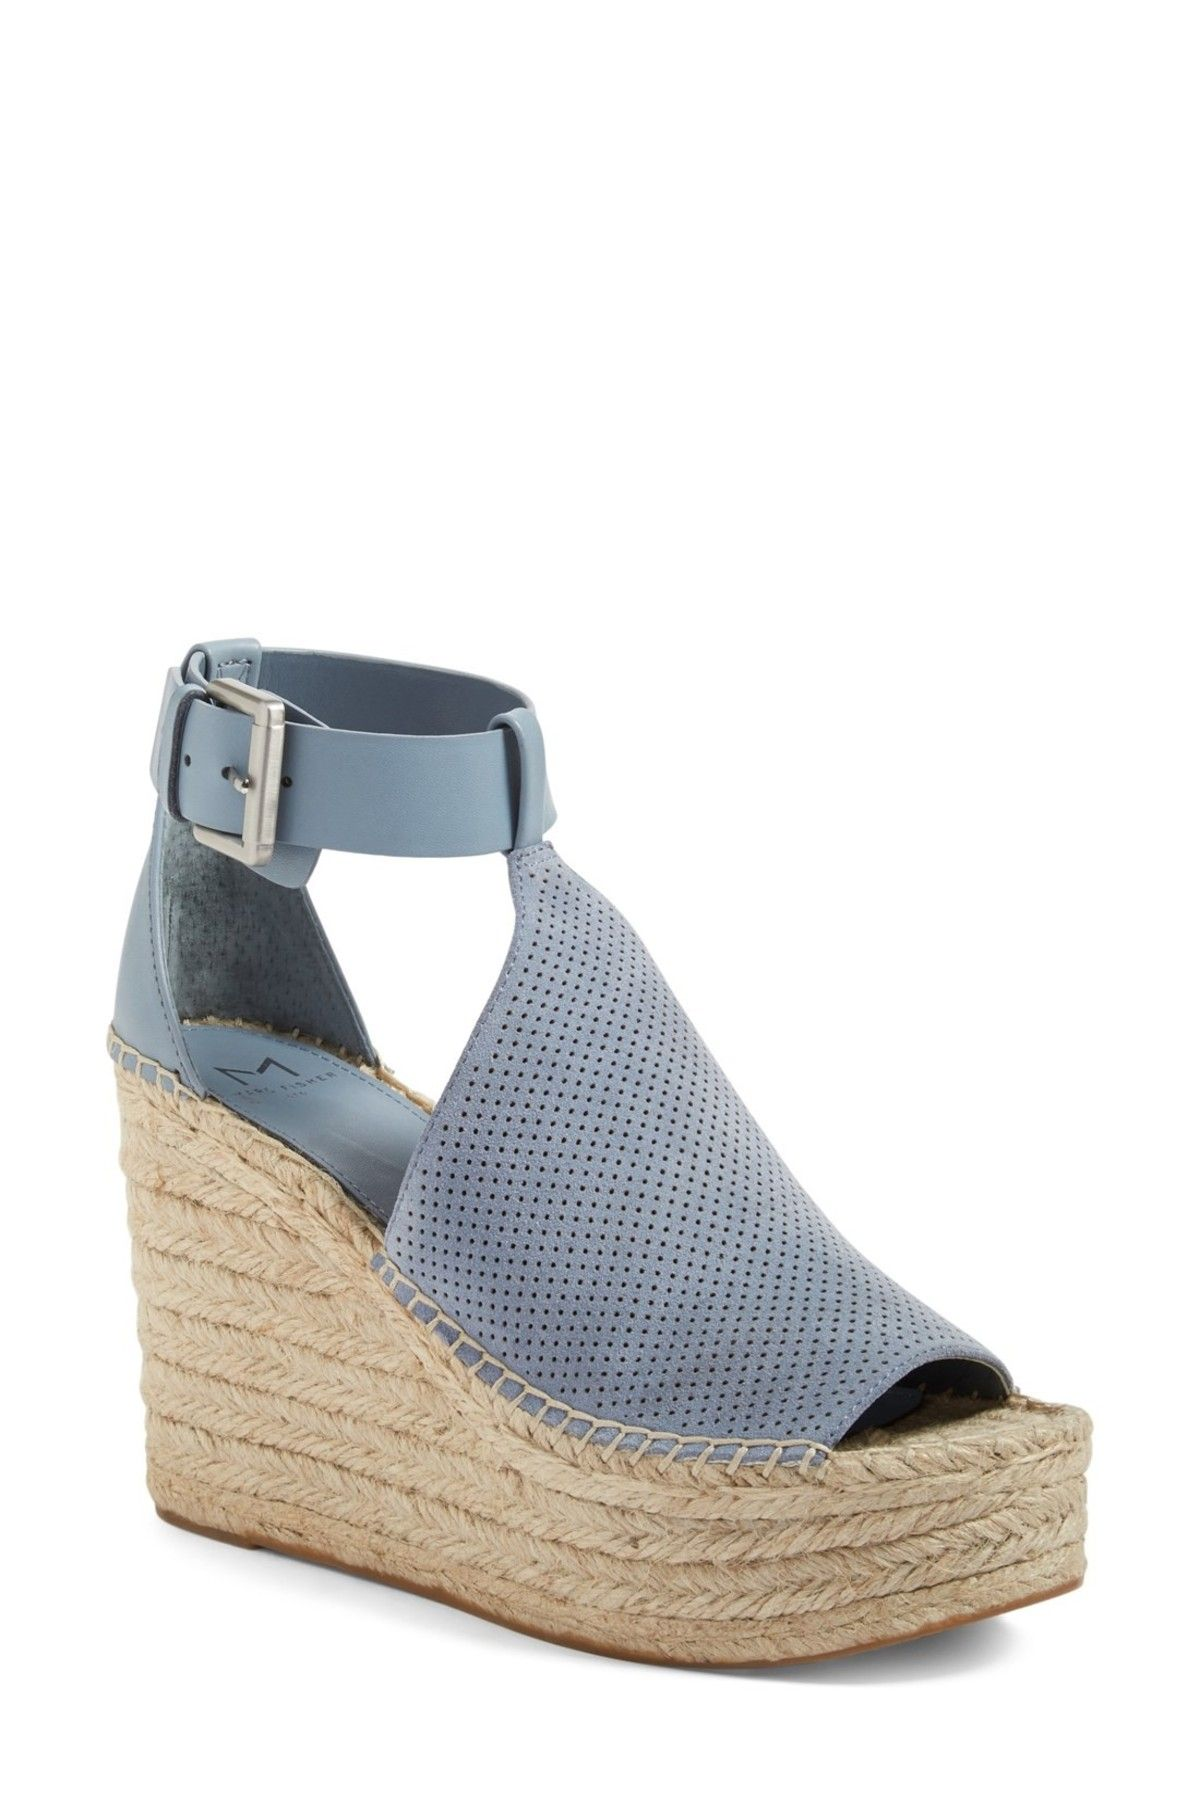 ba3d0e501c5 Marc Fisher Annie Perforated Espadrille Platform Wedge in 2019 ...